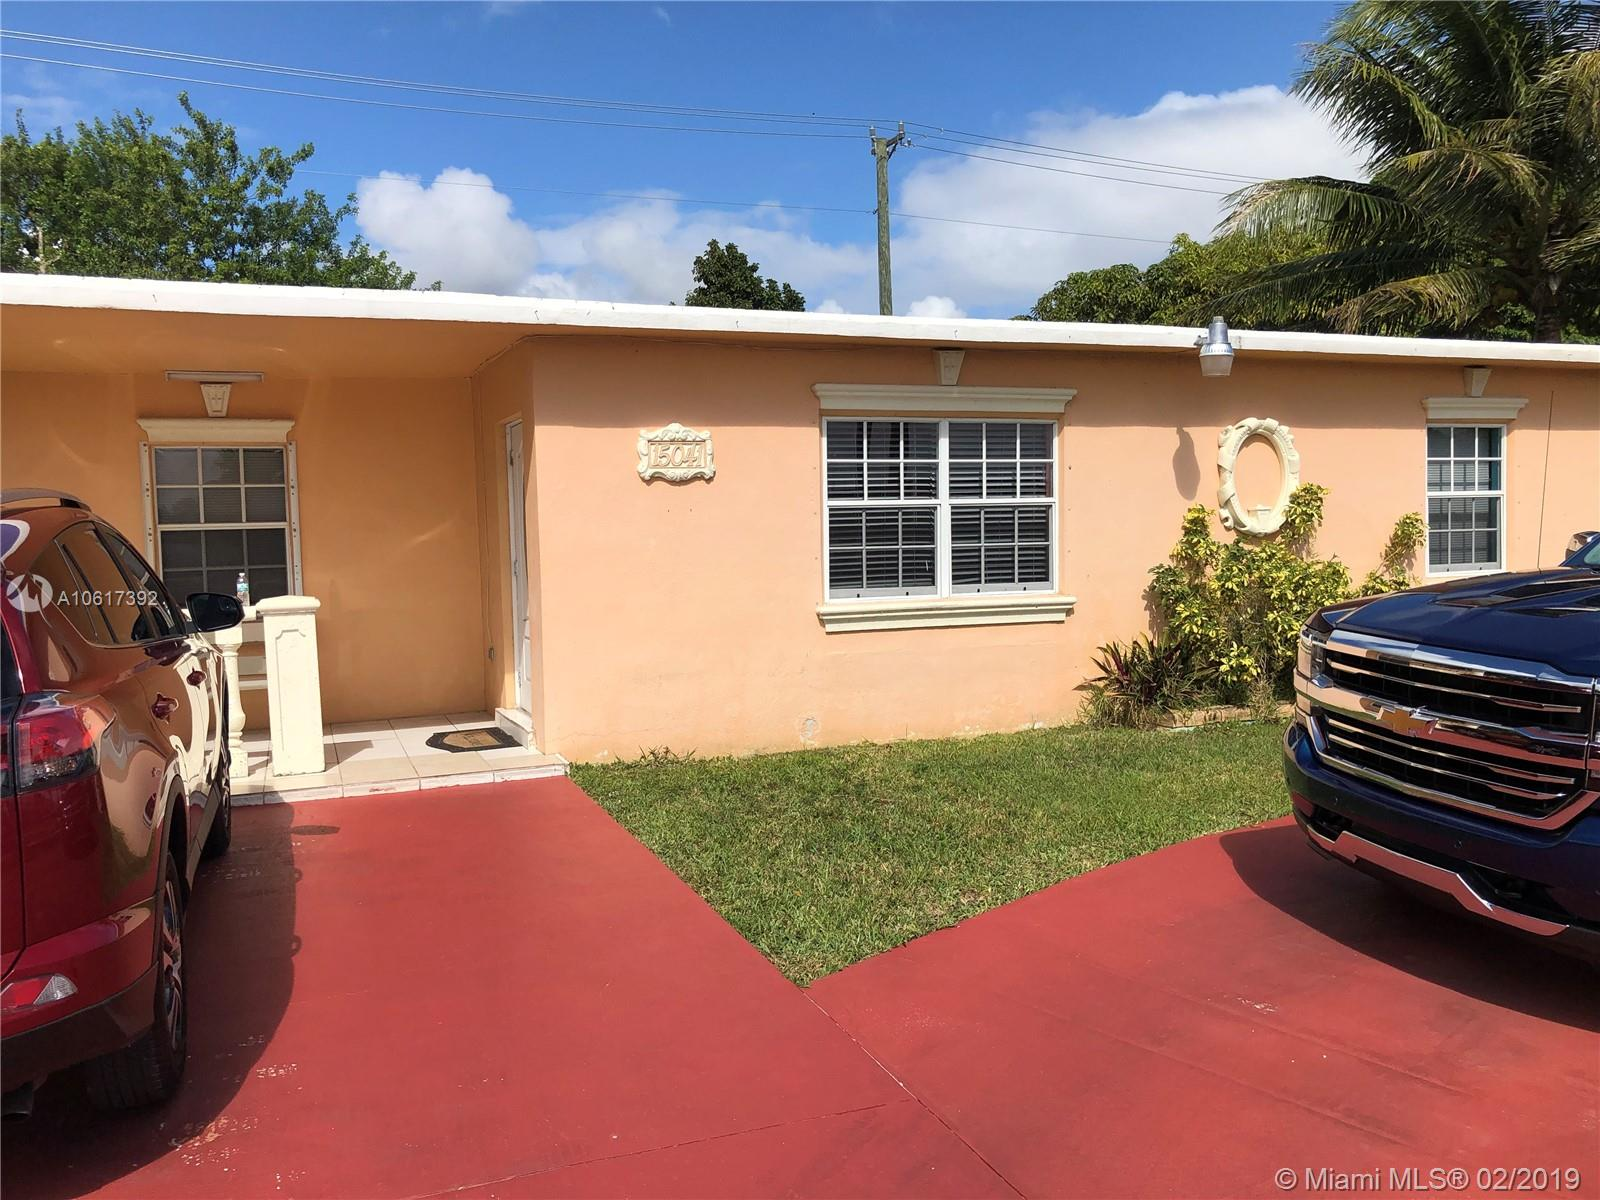 Great Starter Home On Oversized Lot, Priced To Sell Fast!!!!, Convenient Location, Close To The Florida Turnpine, Schools, Shops And More. No Hoa, Dont Disturb Owners.